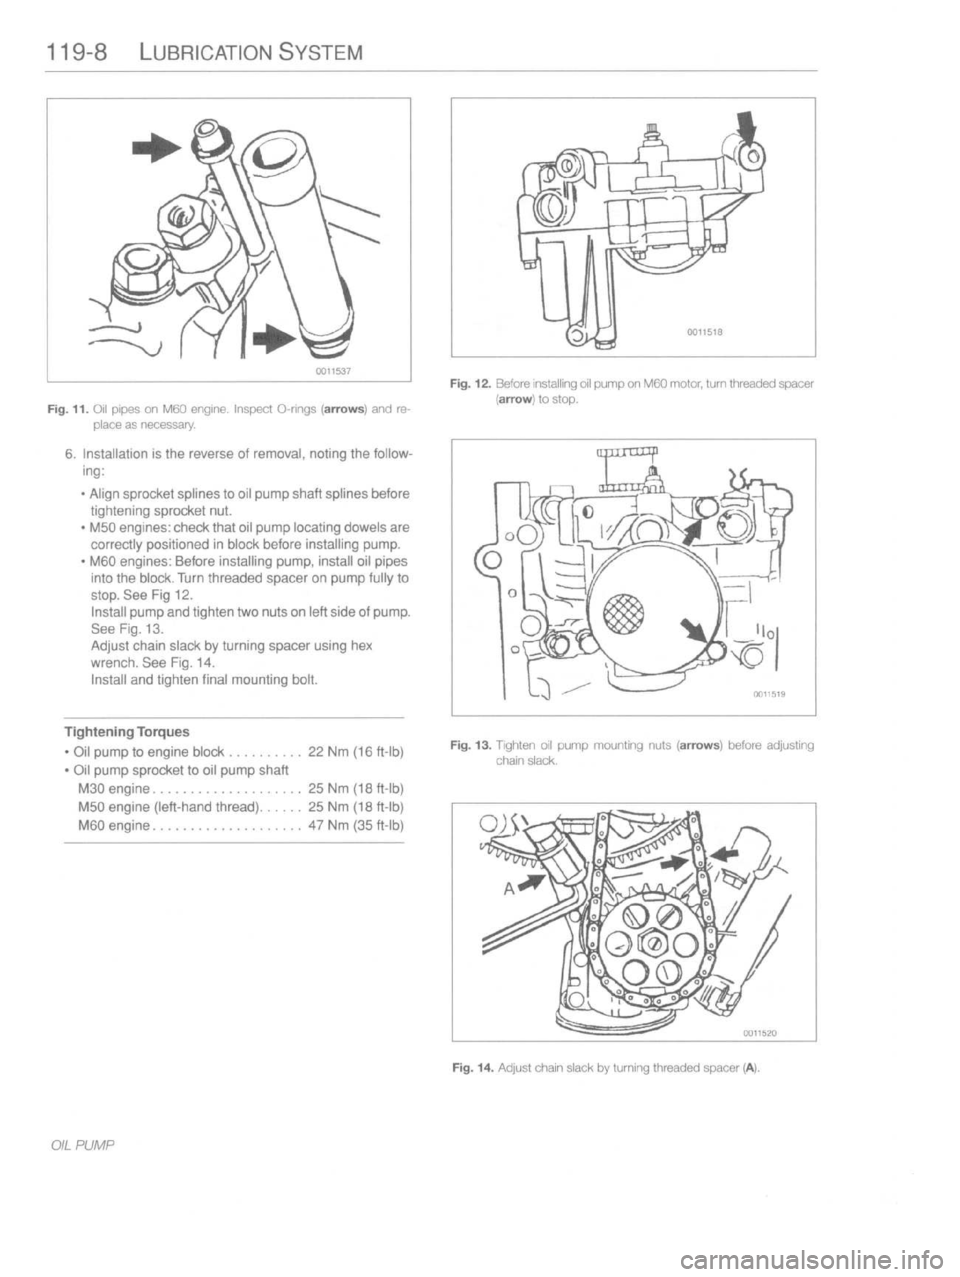 Bmw 530i 1989 E34 Workshop Manual M30 Engine Diagram